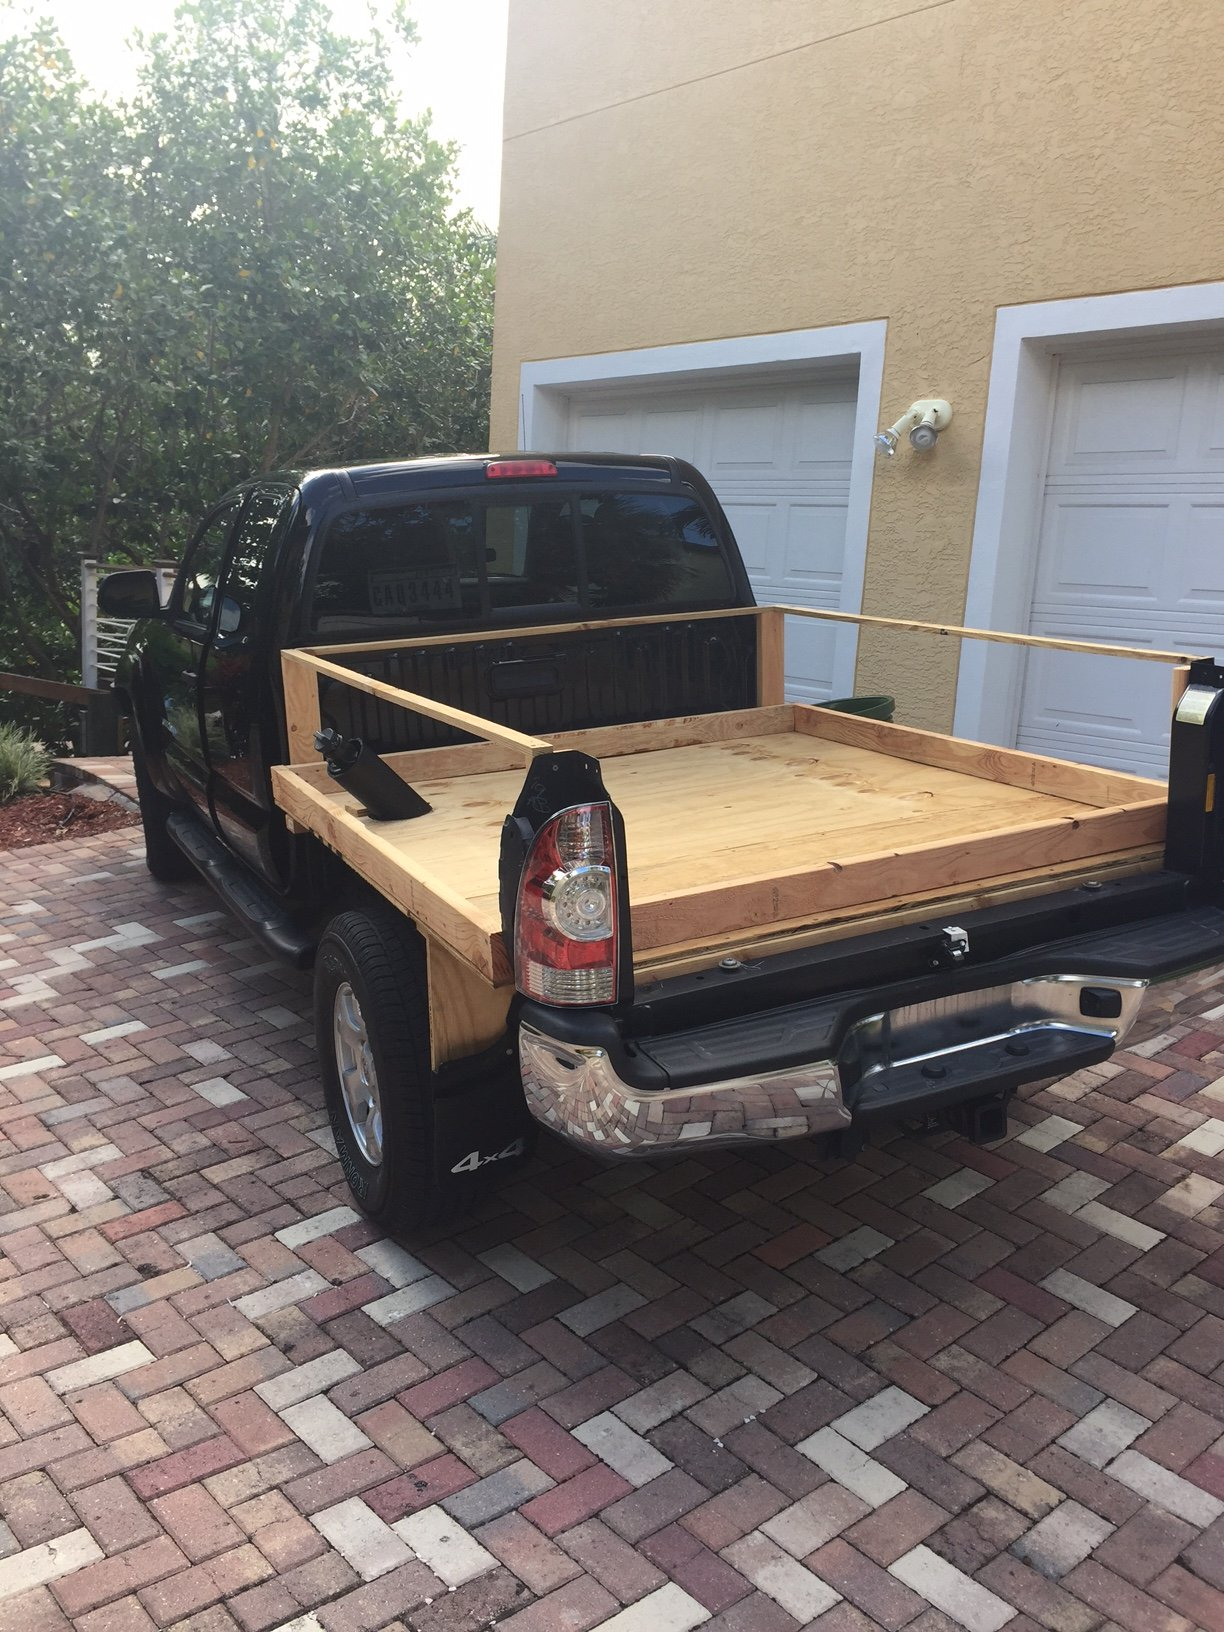 2013 Toyota Tacoma Access Cab Chinook build | IH8MUD Forum